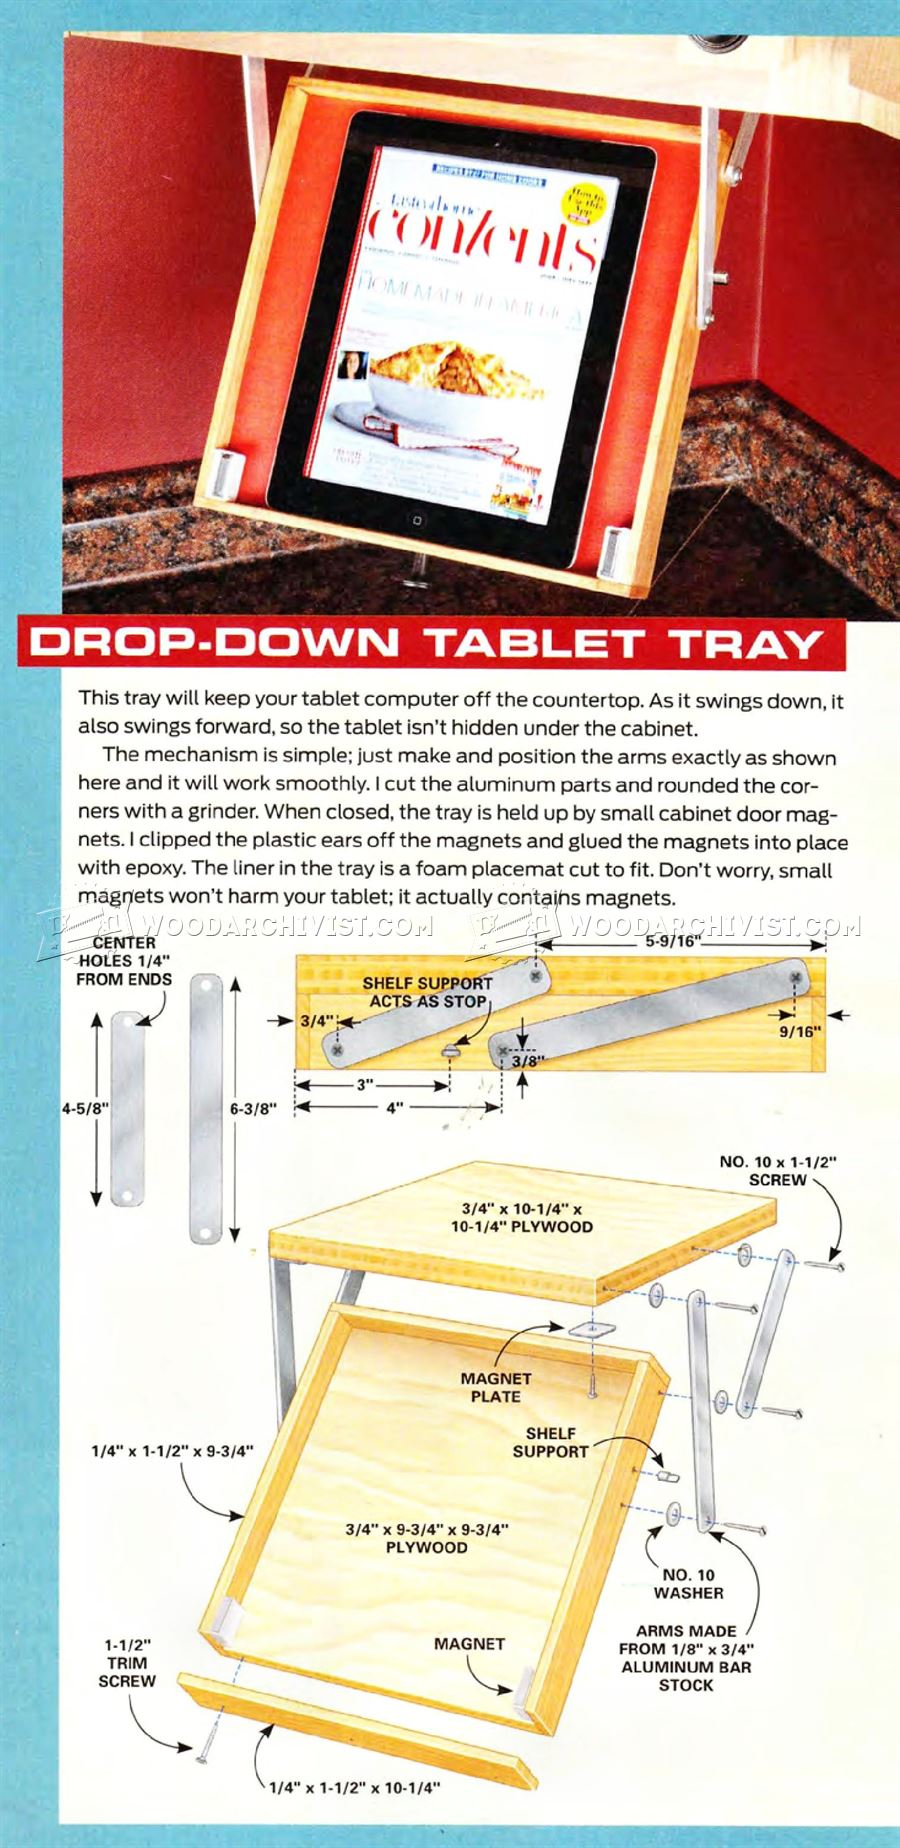 Drop-Down Tablet Tray Plans